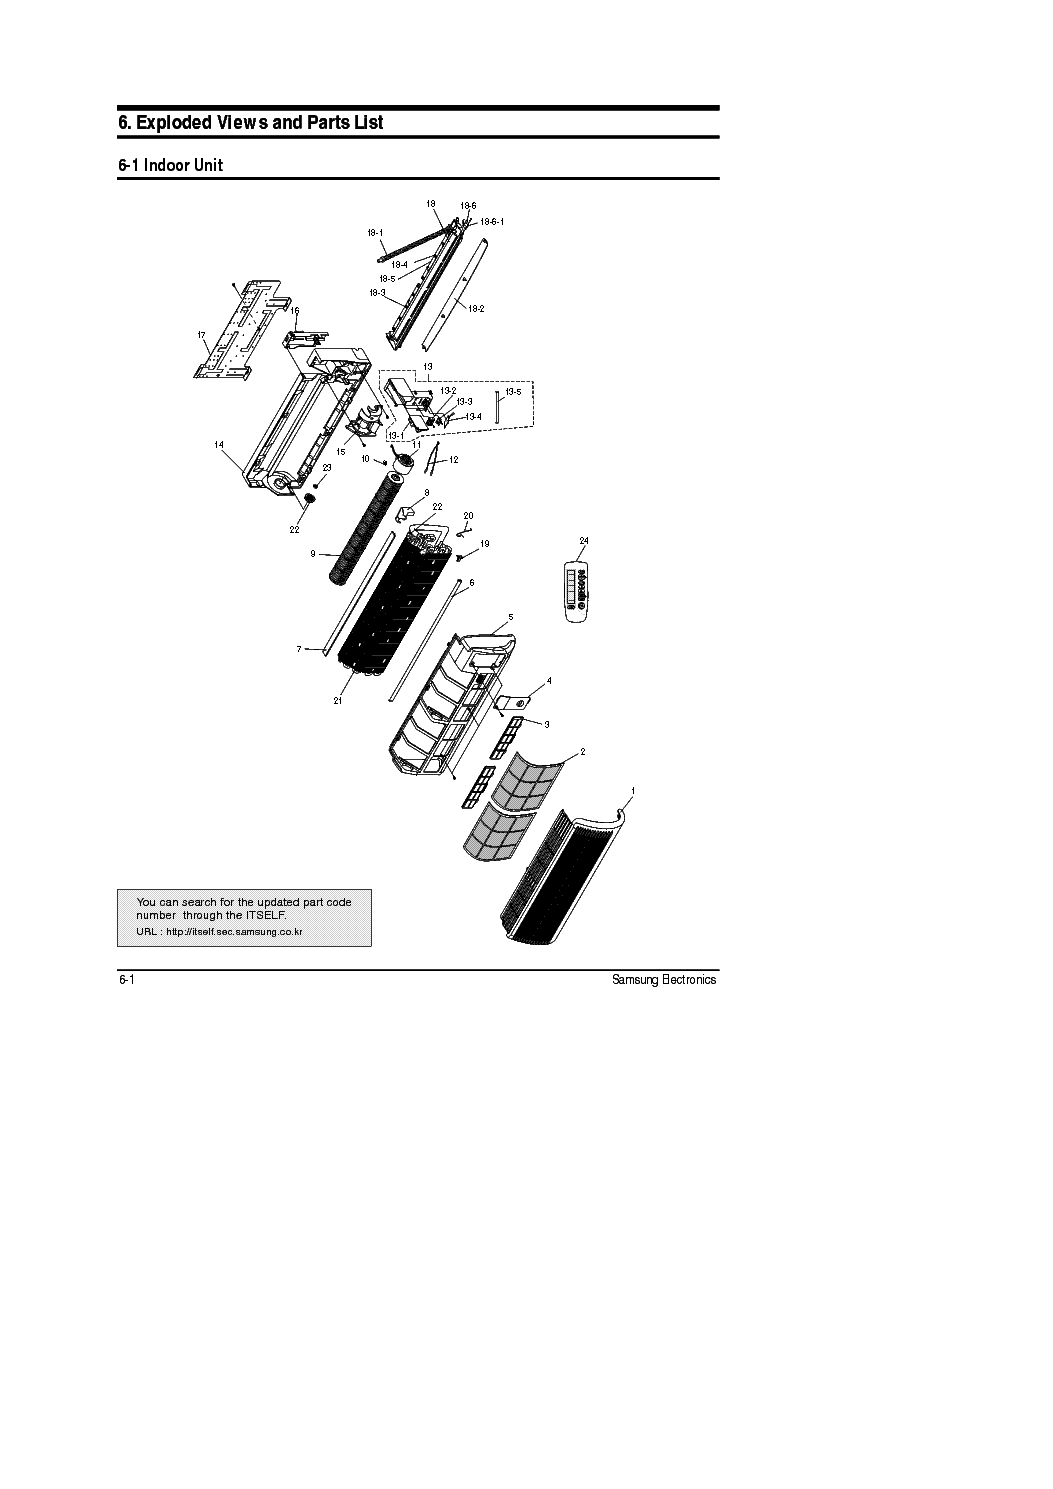 SAMSUNG SC12ZA6 EXPLODED VIEWS PARTS LIST Service Manual